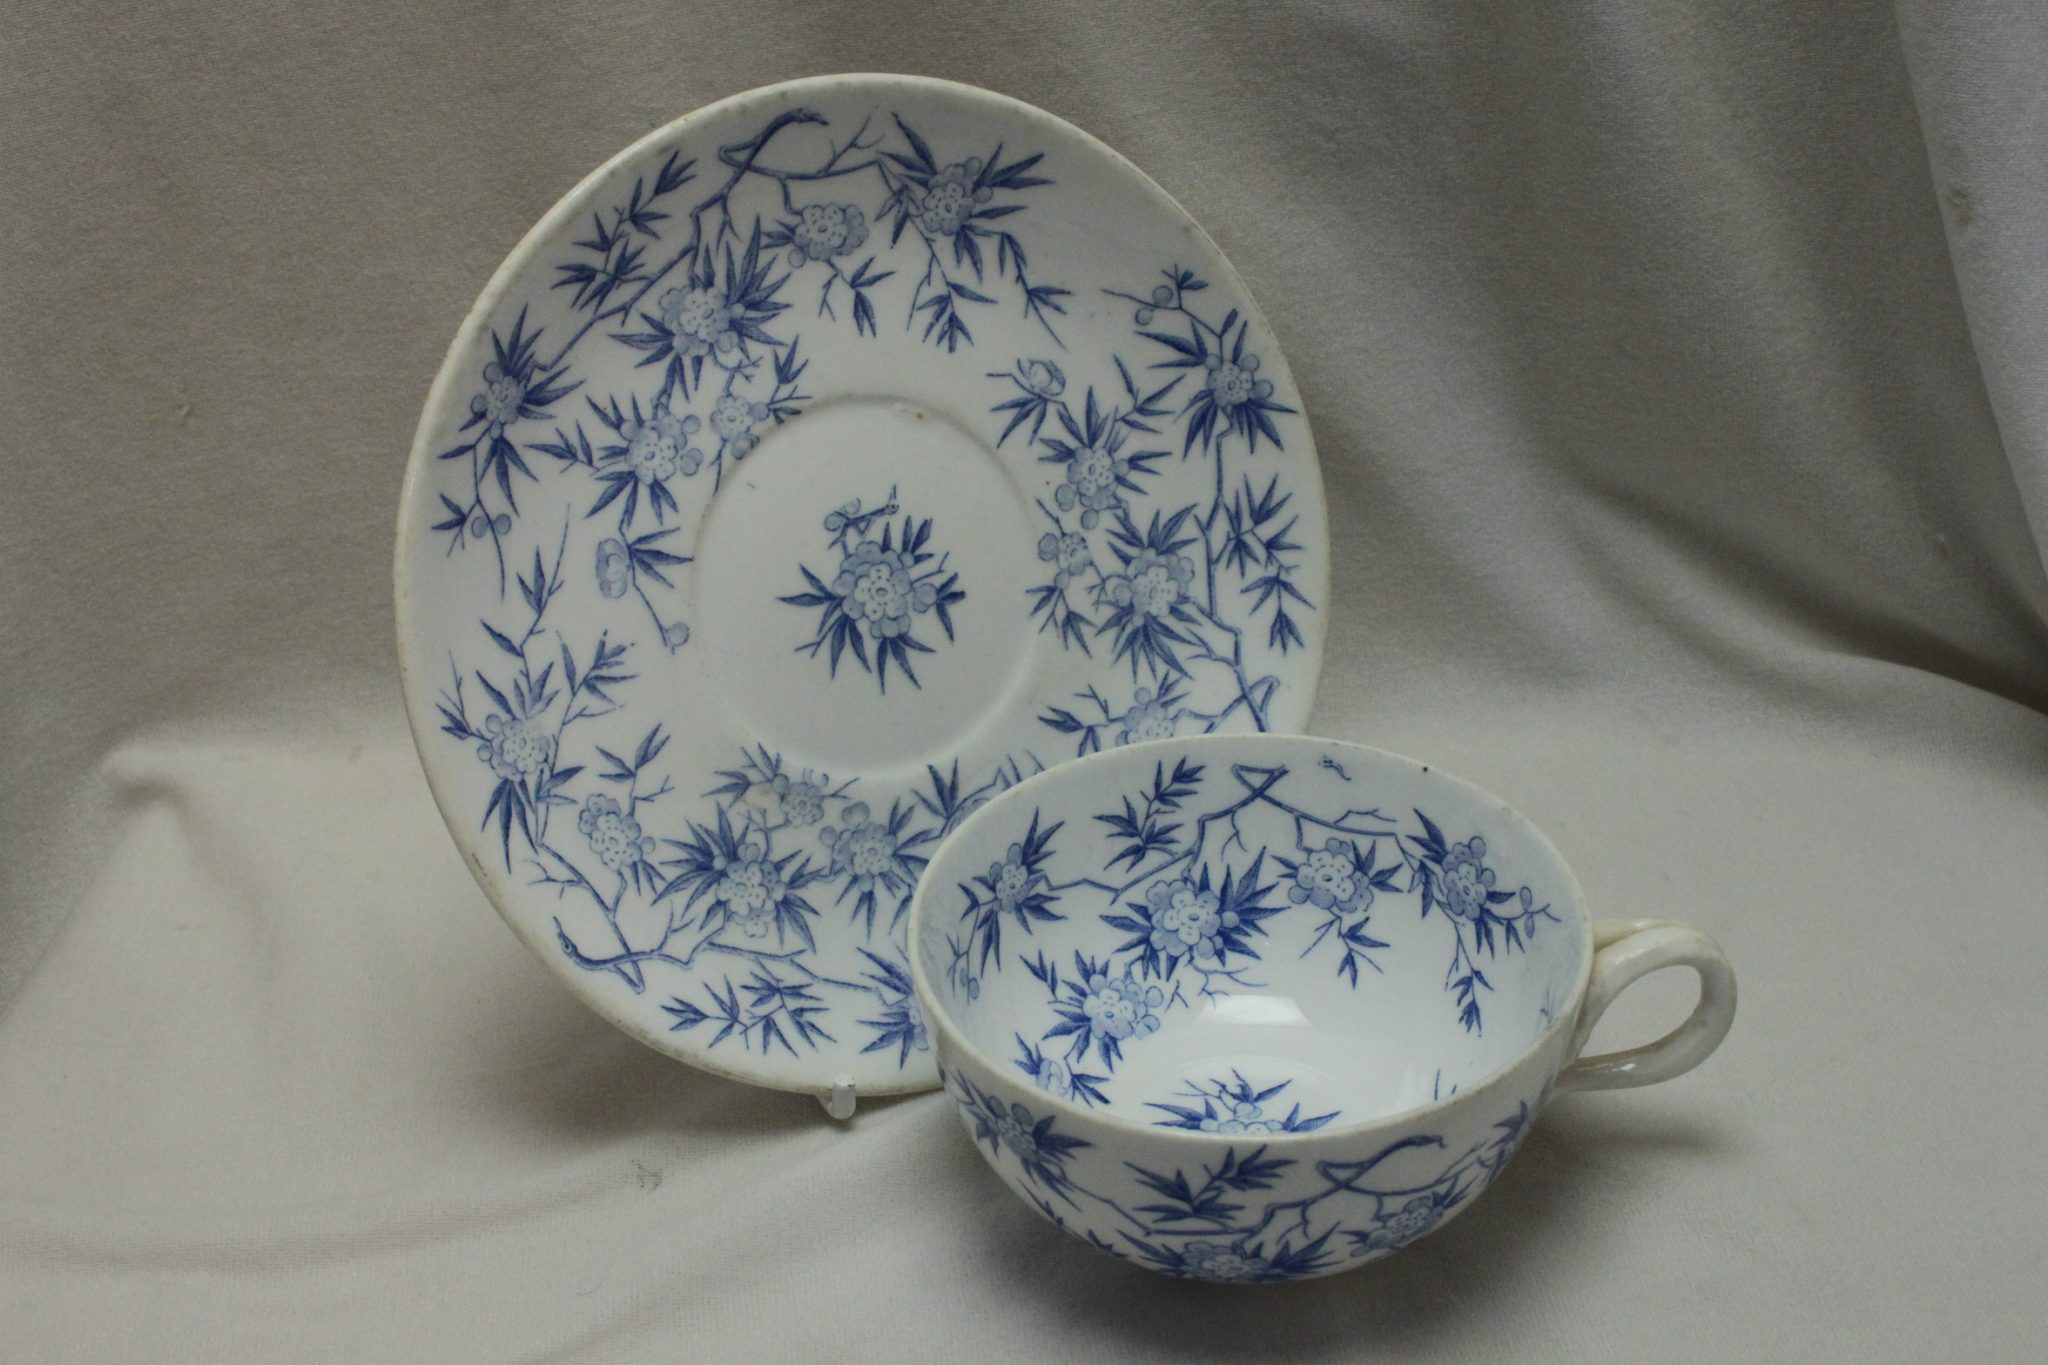 Sarreguemines blue and white porcelain cup and saucer